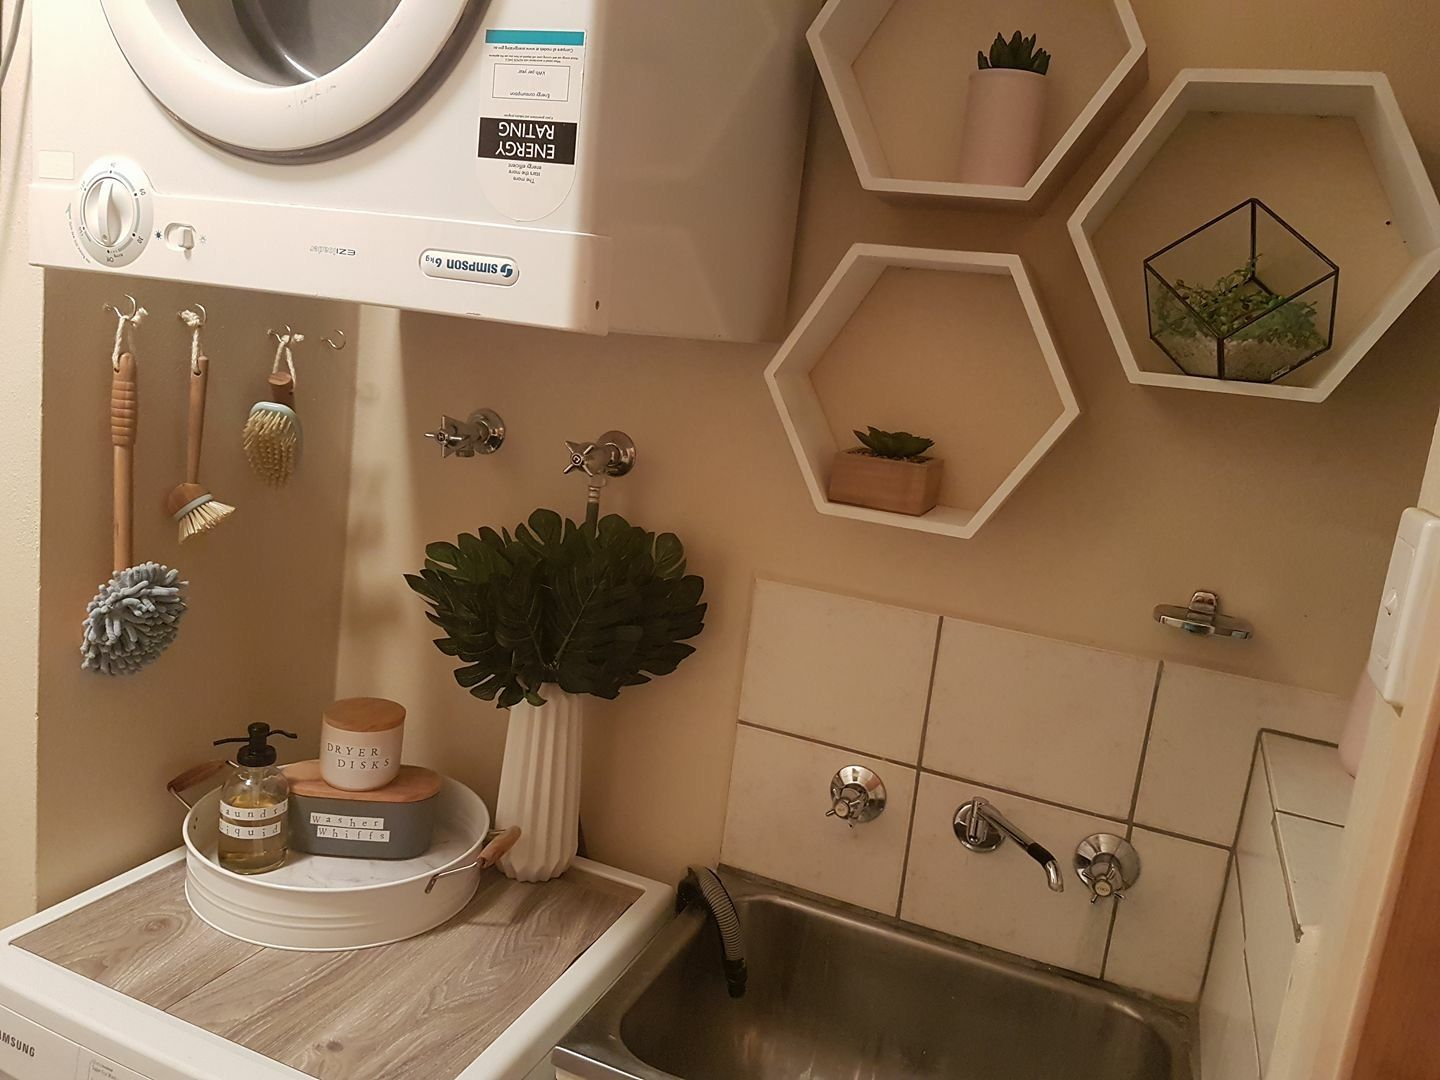 Kmart Laundry Room Styling